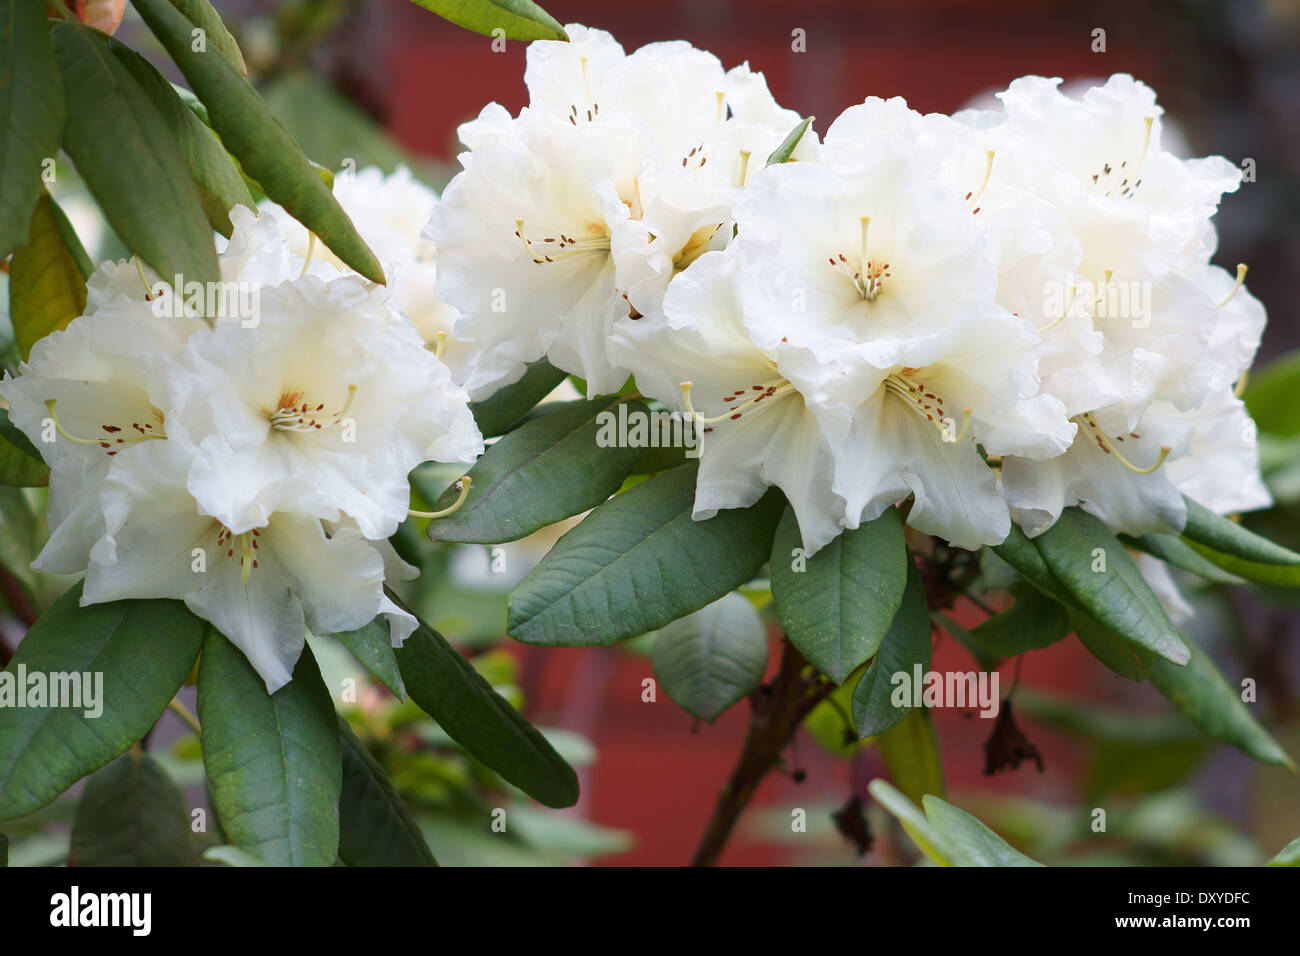 Rhododendron white flowers close up Breslau Stock Photo